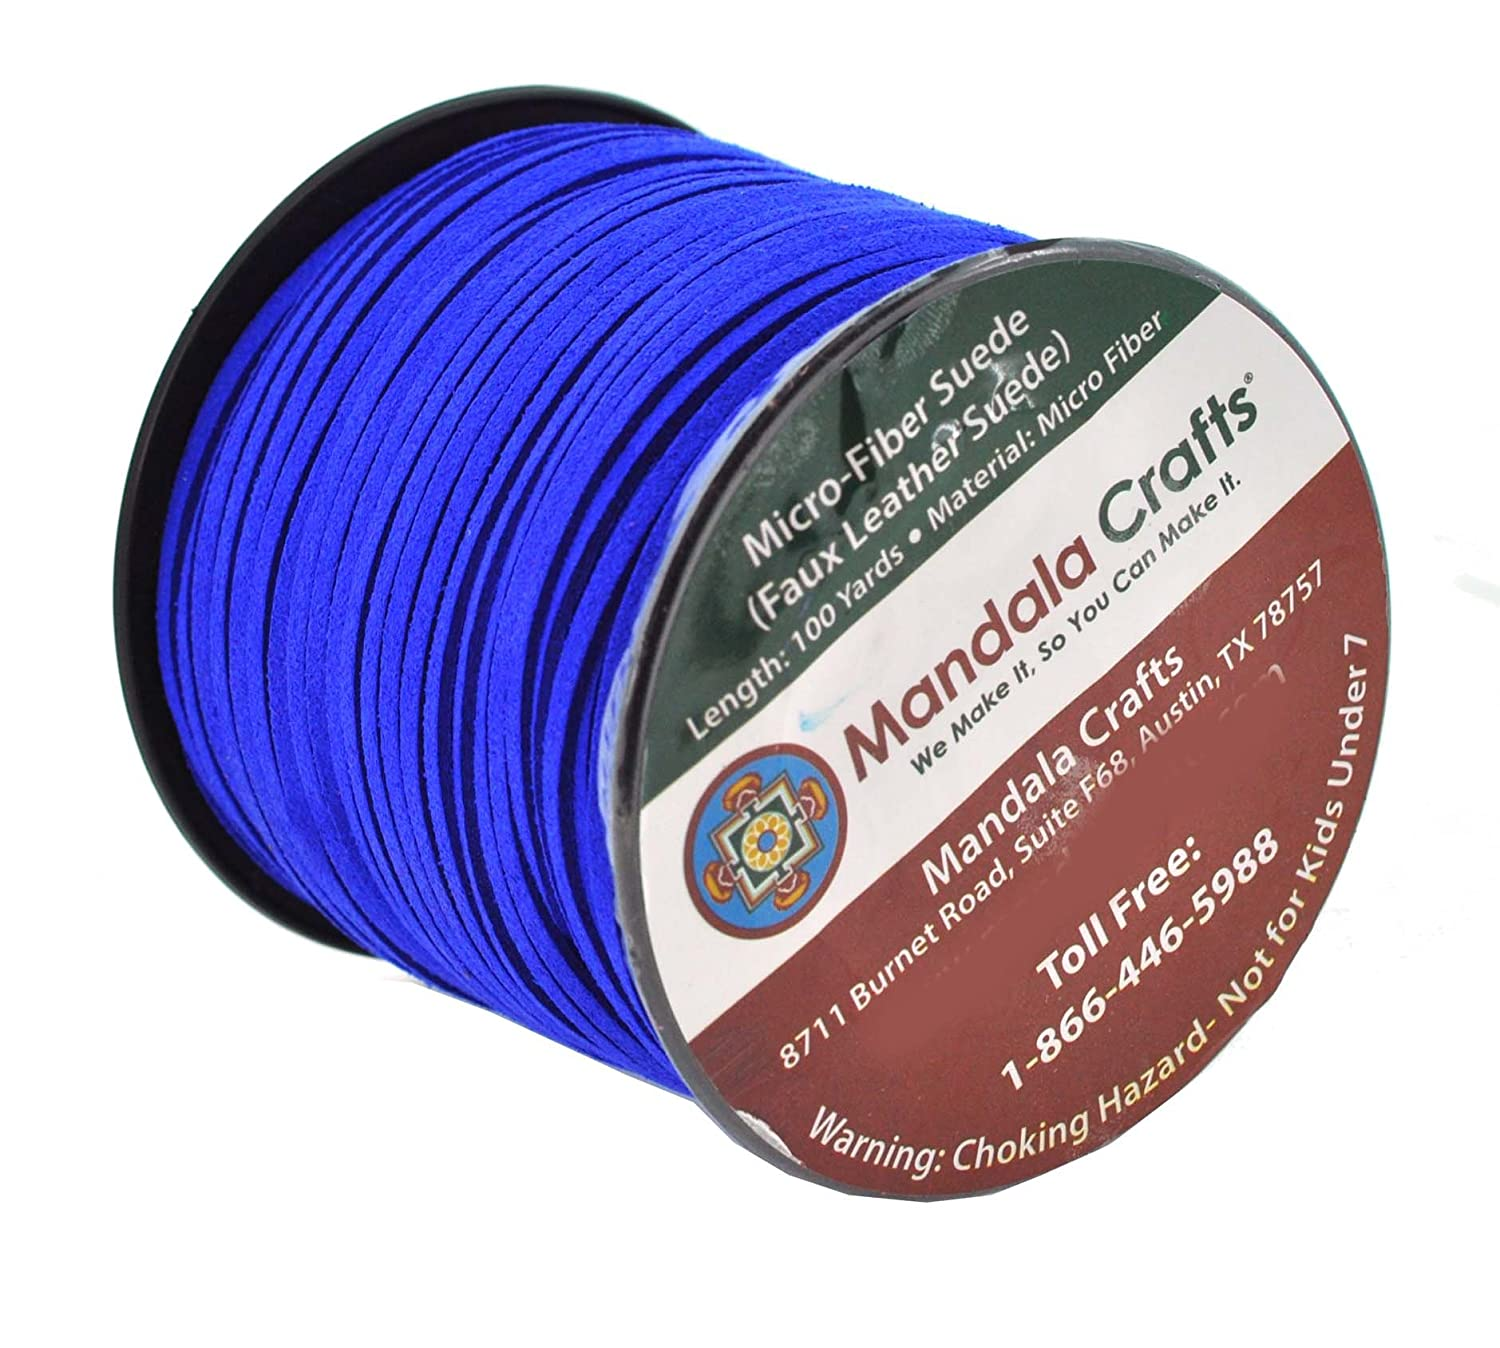 Mandala Crafts 100 Yards 2.65mm Wide Jewelry Making Flat Micro Fiber Lace Faux Suede Leather Cord Ice Gray